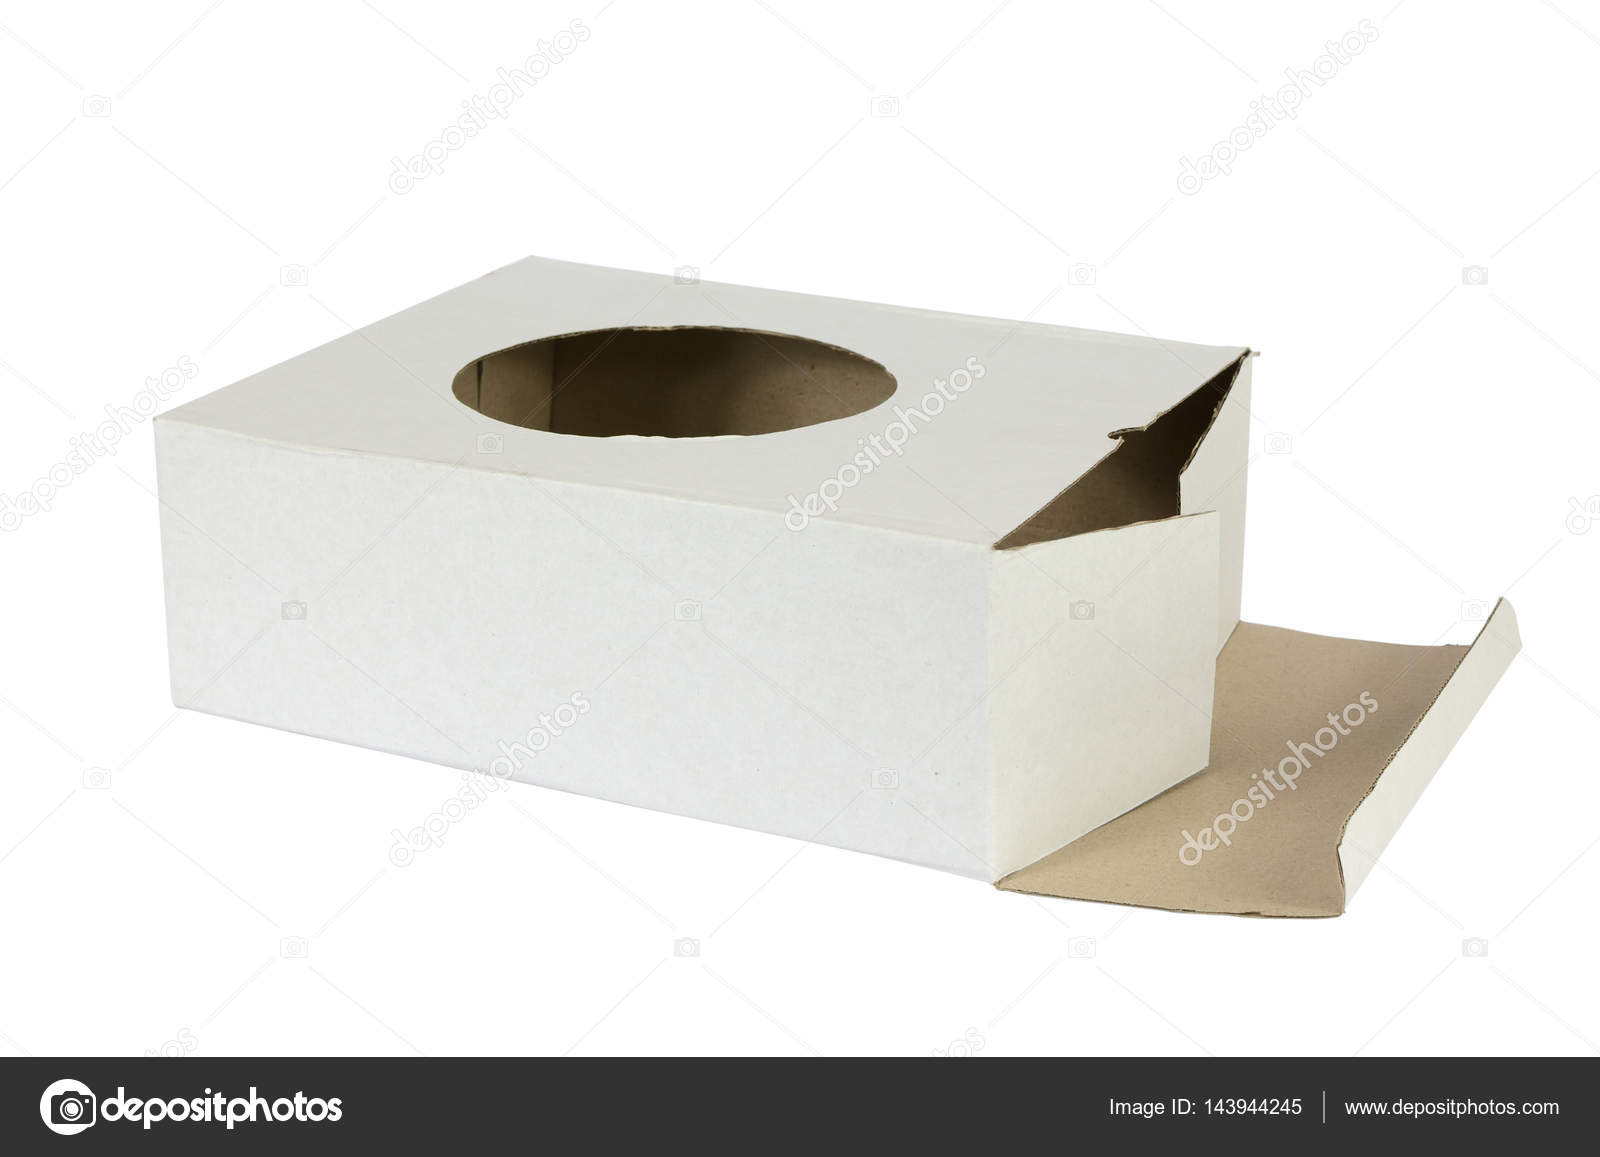 Image result for cardboard box with hole